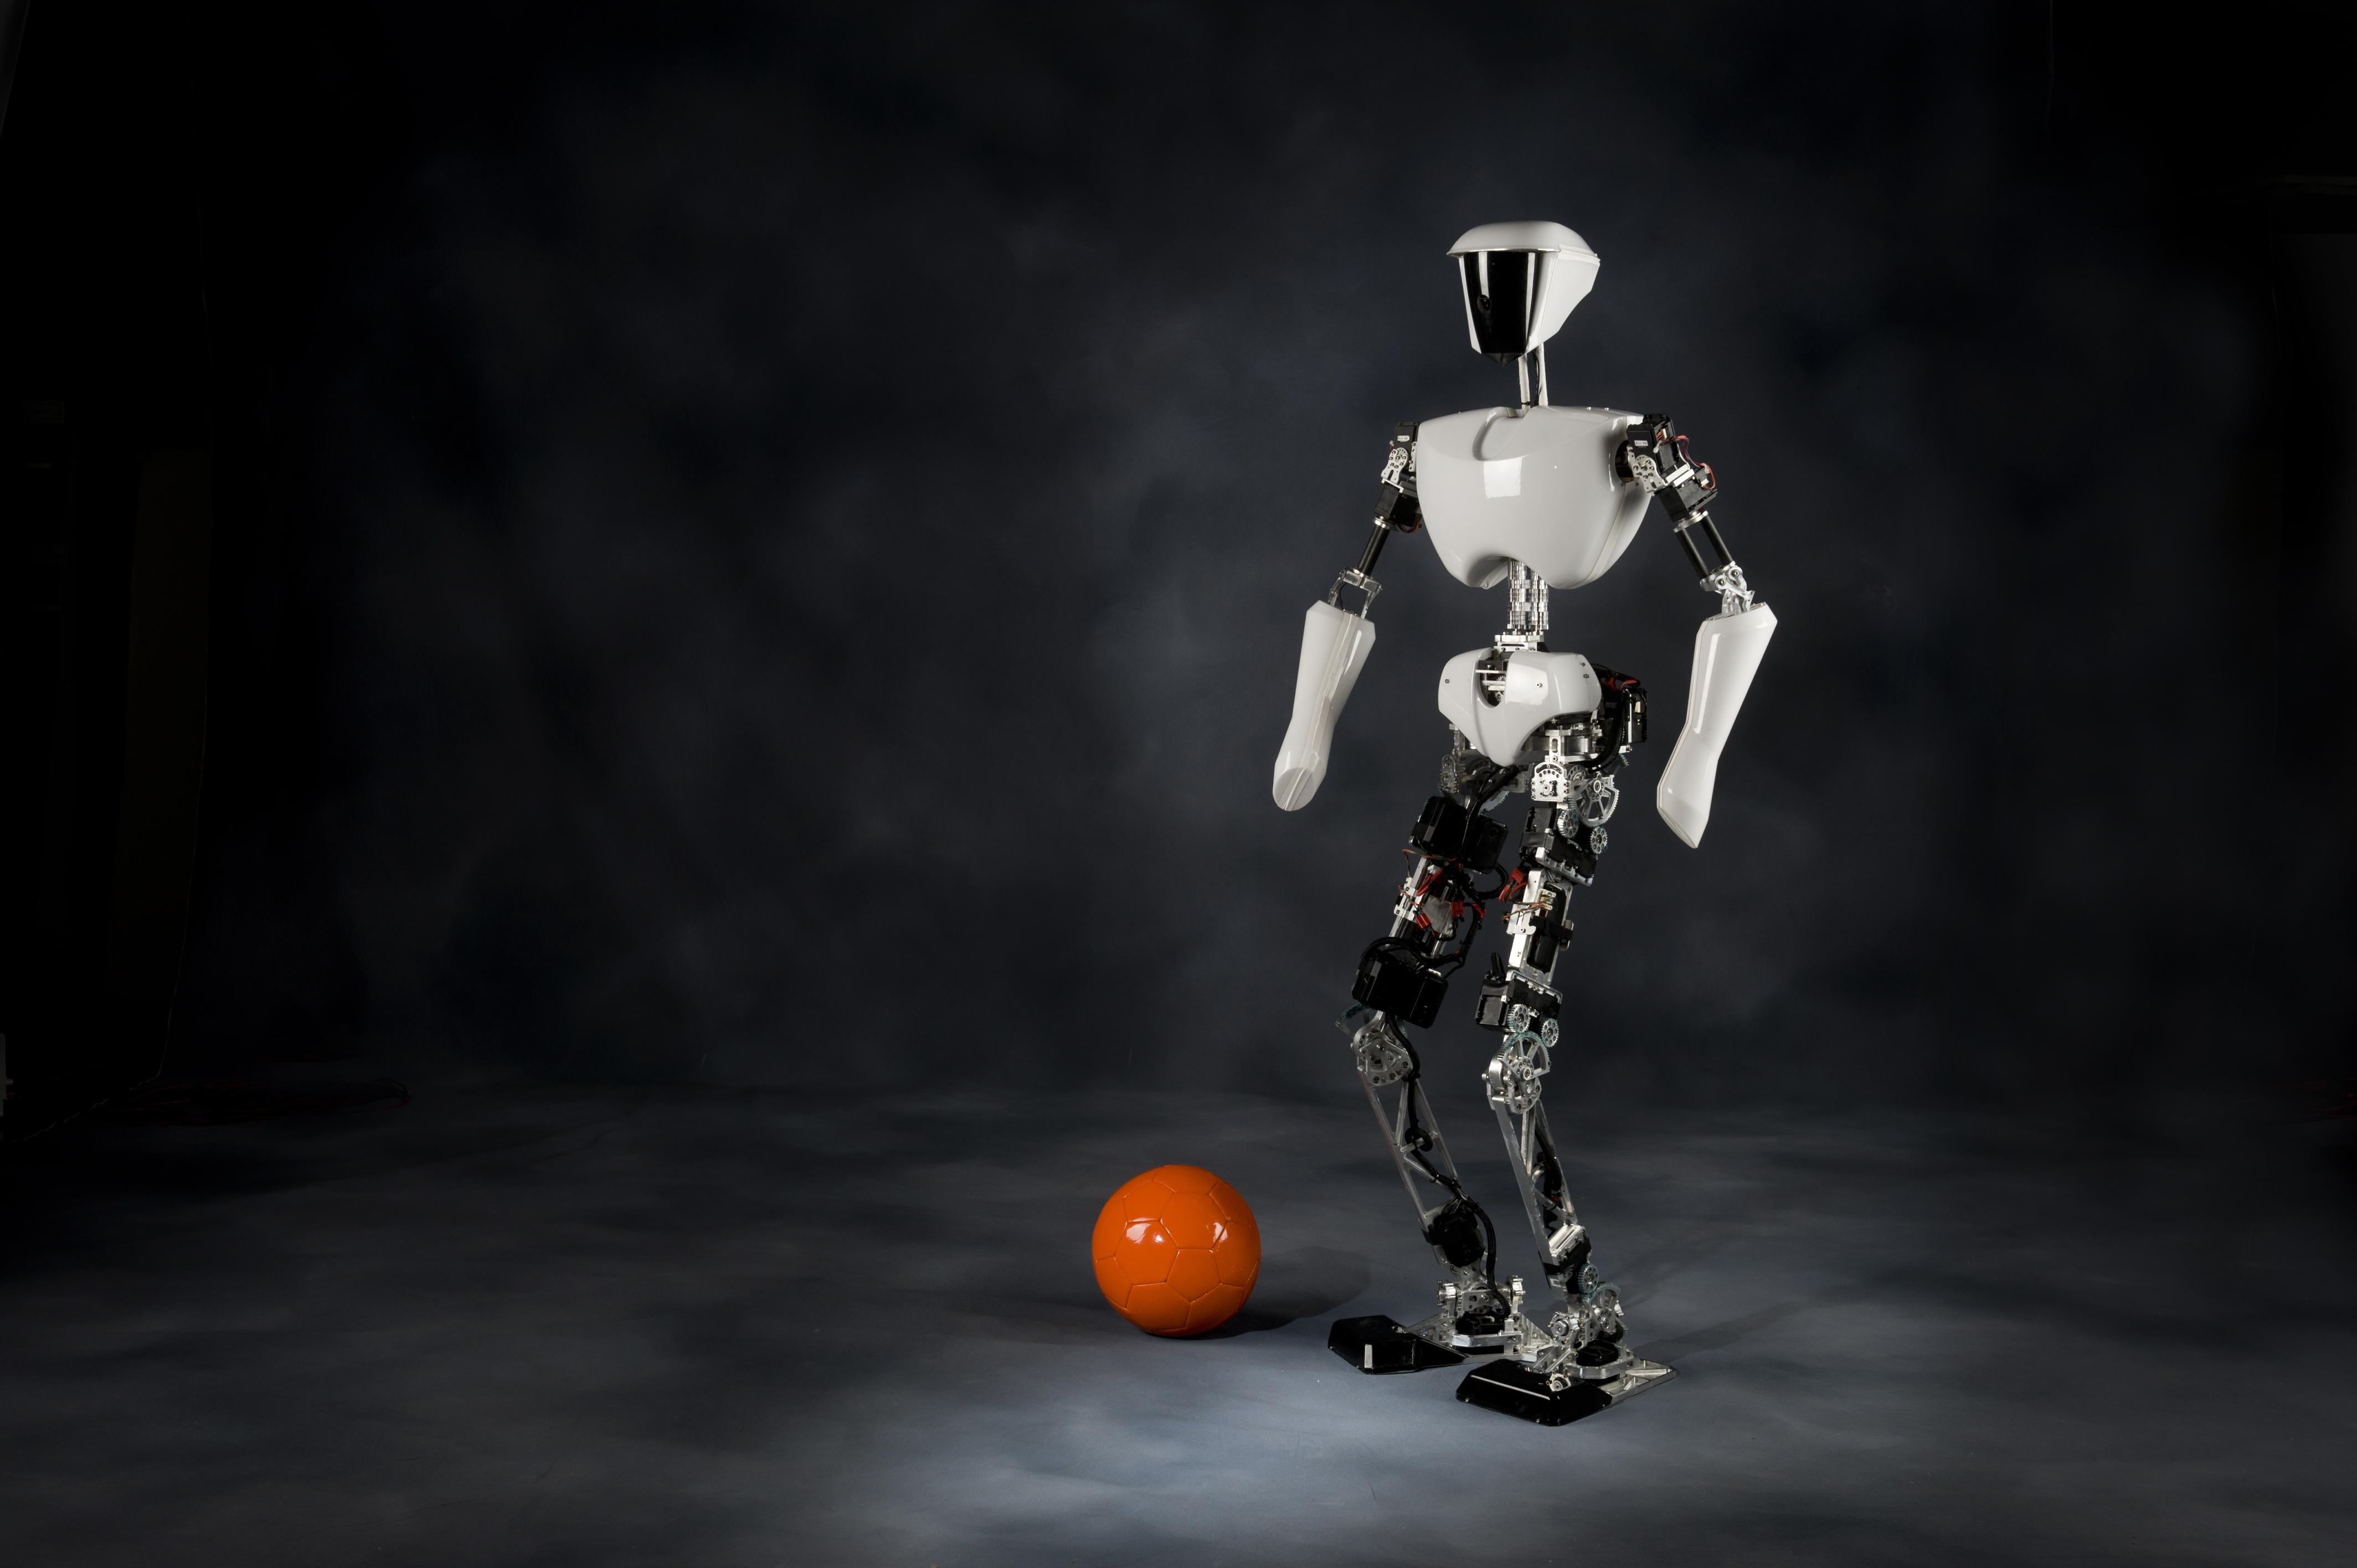 CHARLI-2, the Cognitive Humanoid Autonomous Robot with Learning Intelligence, Version 2